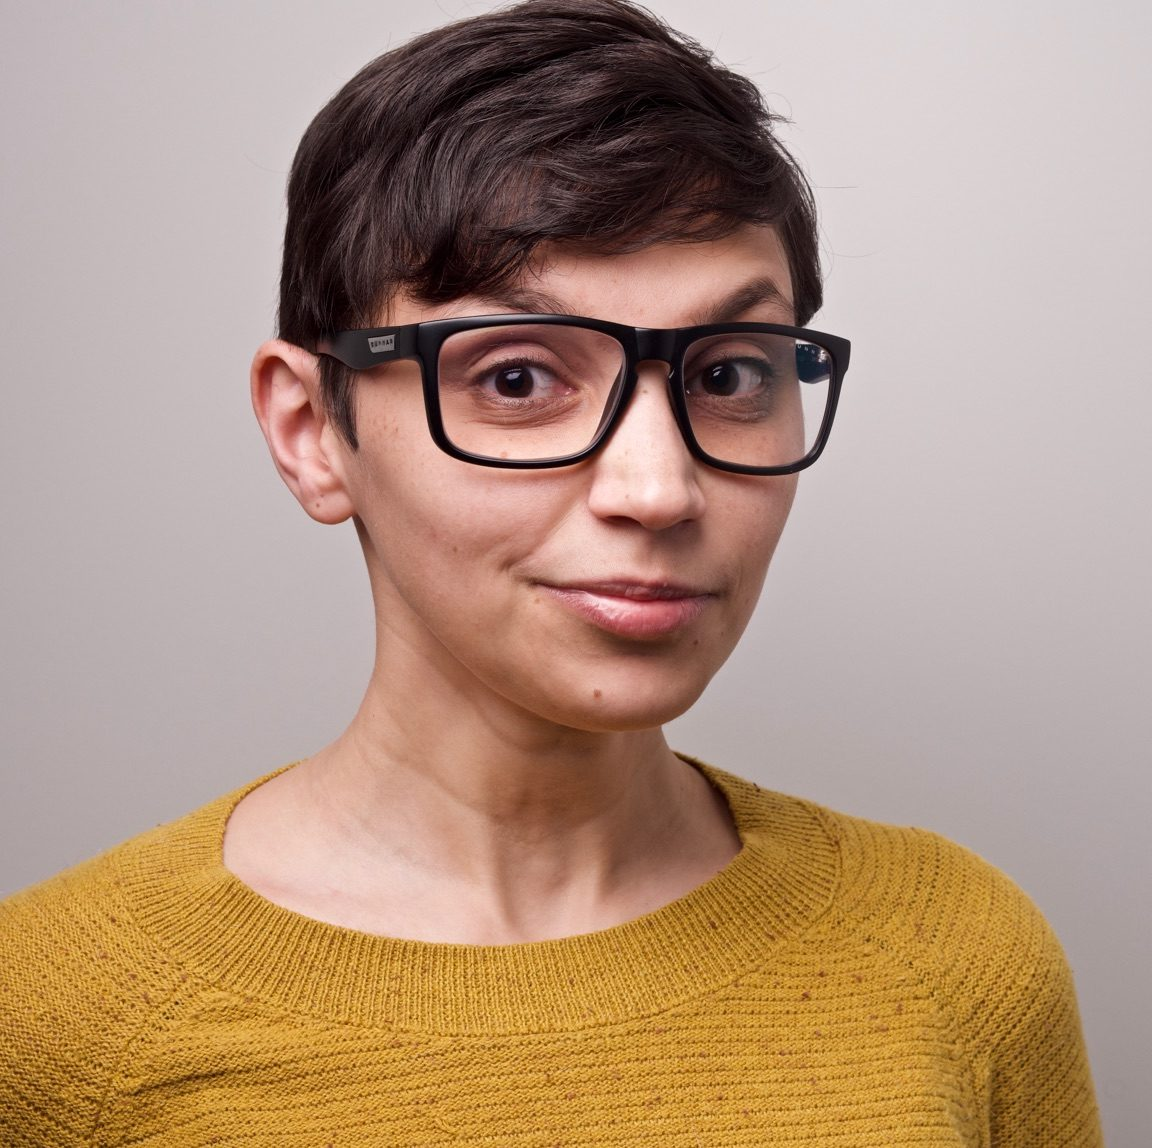 Woman with short brown hair wearing black-rimmed glasses.